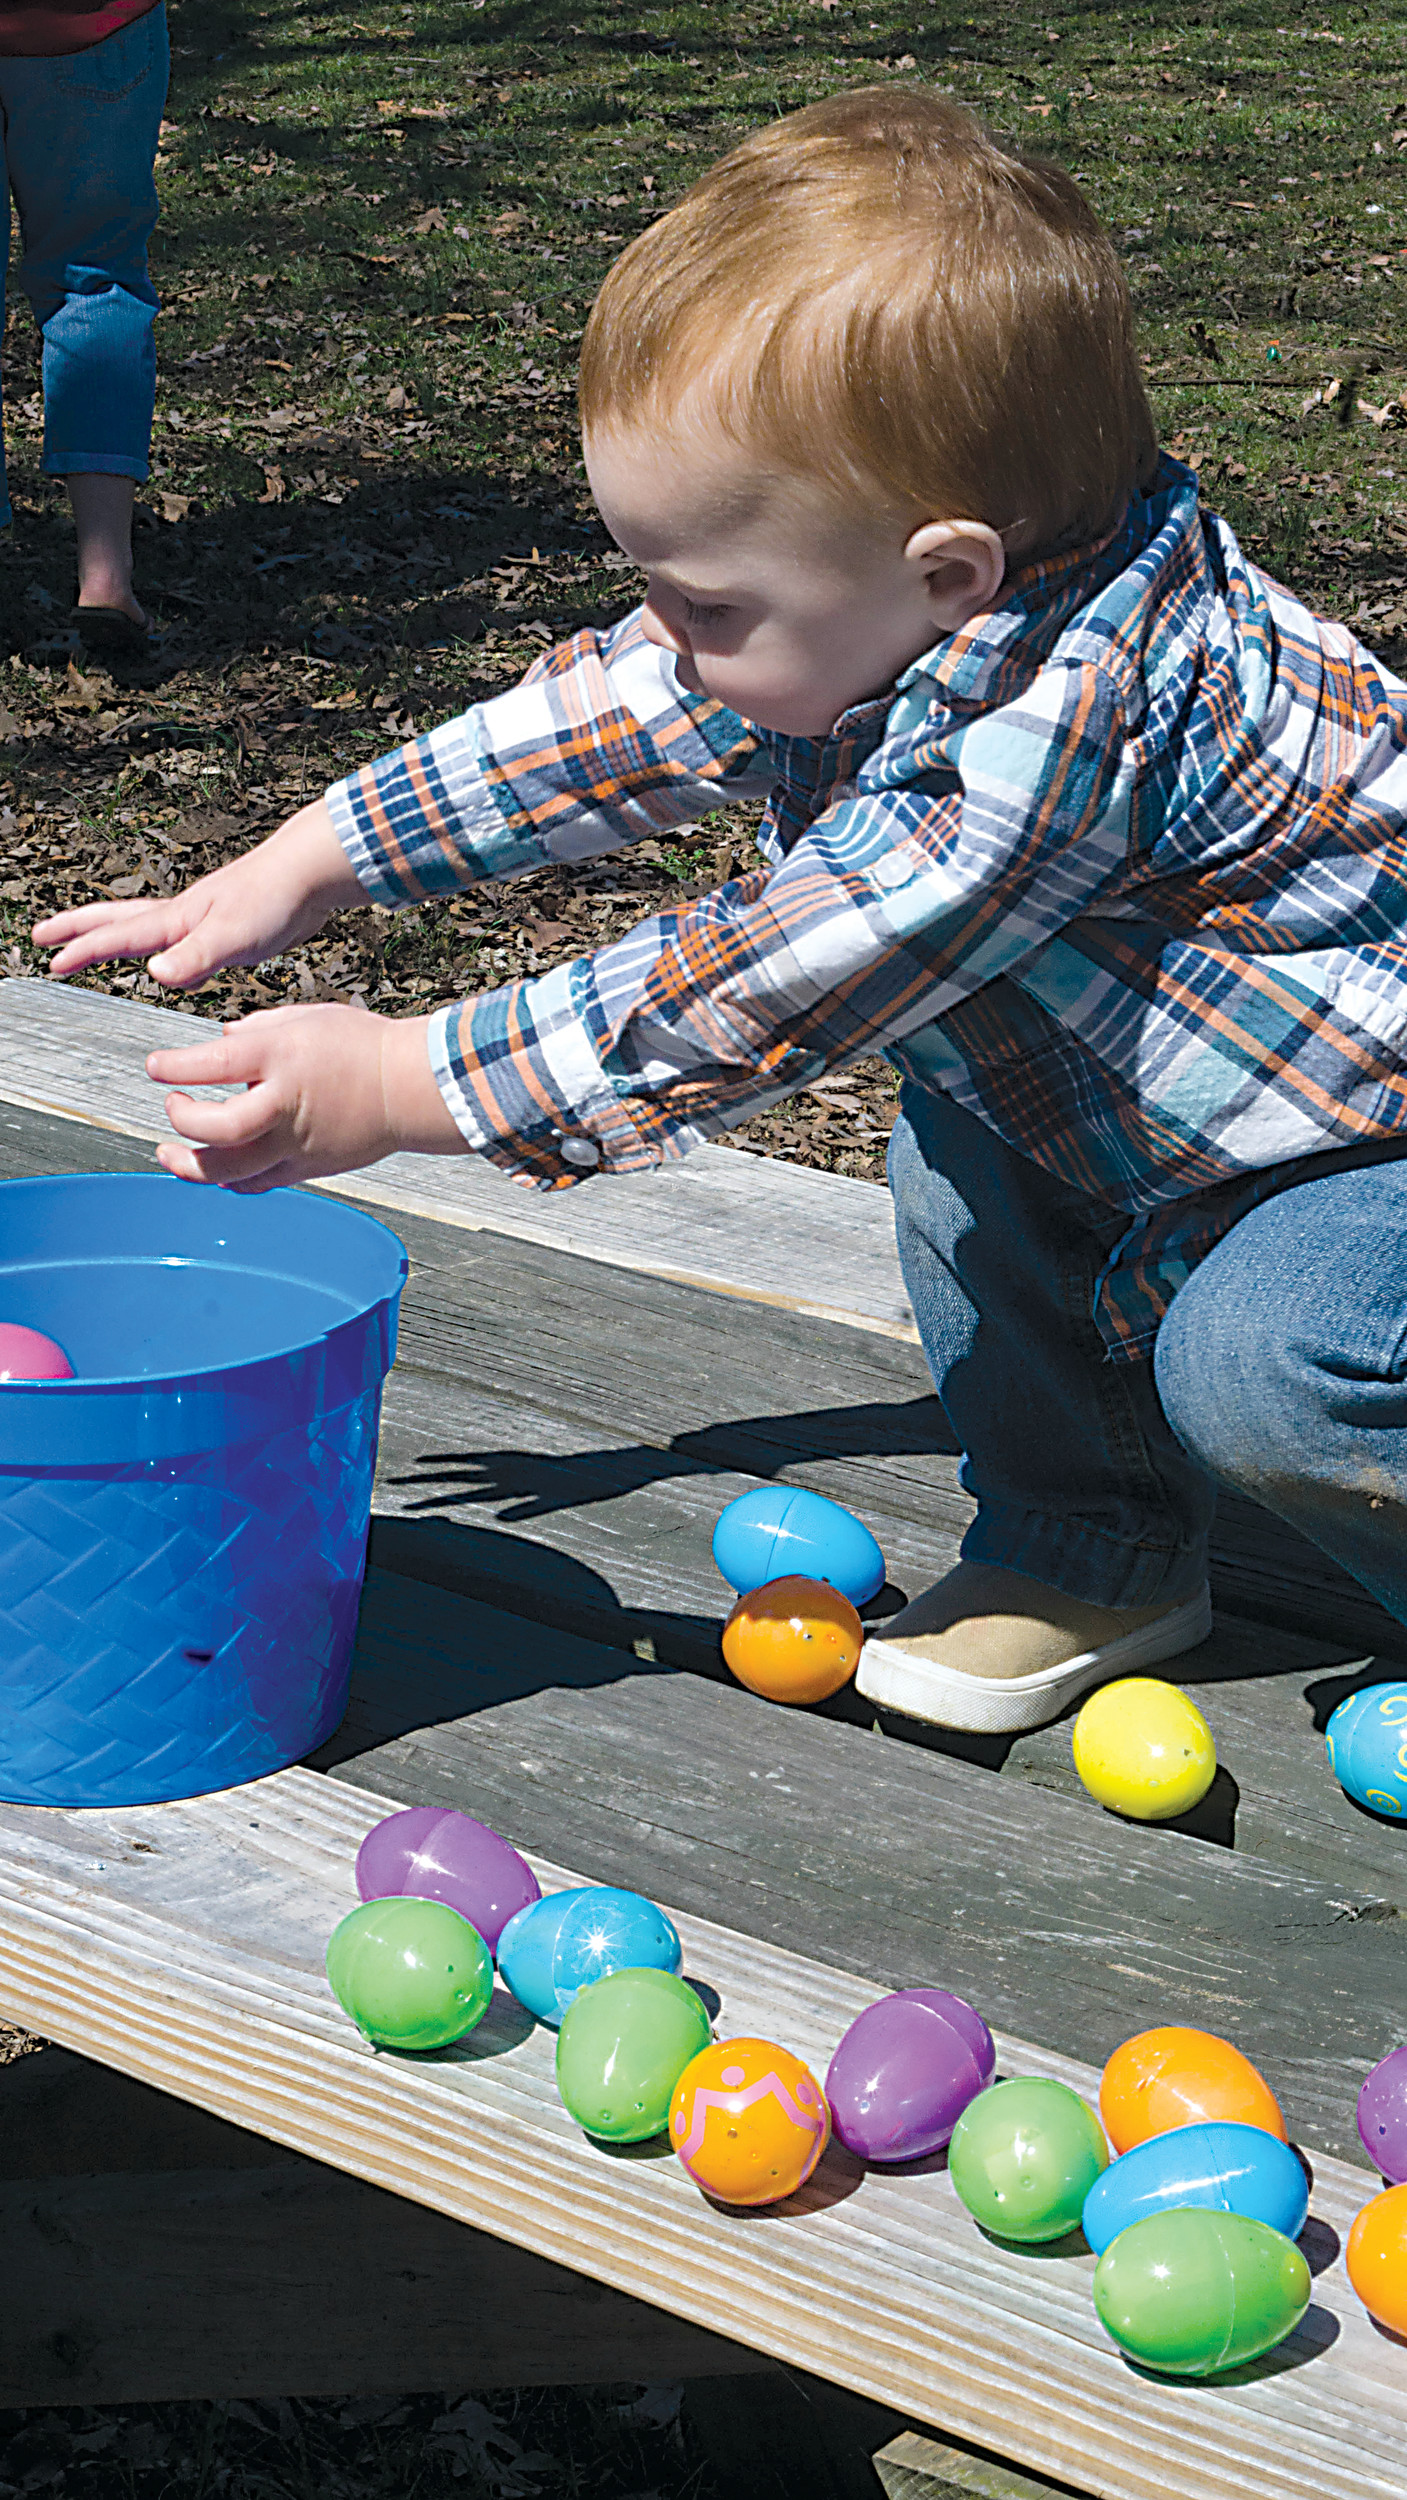 Landon Markle fills his bucket with eggs after taking them out to count them